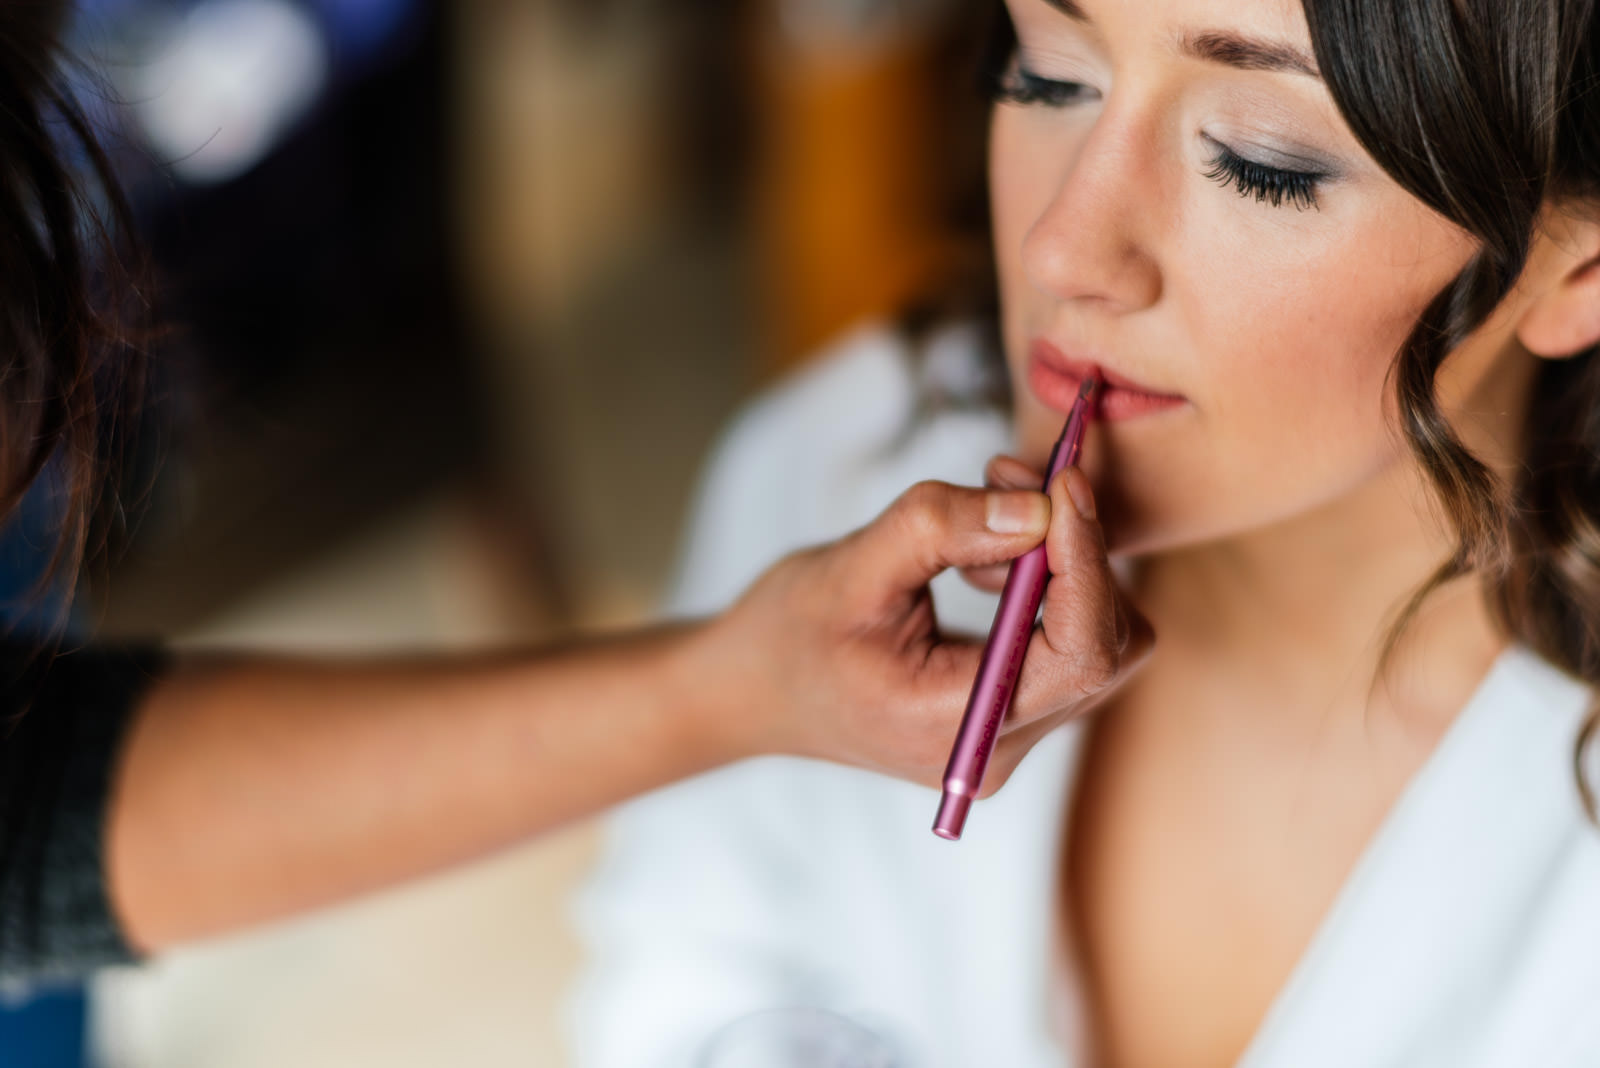 Bride lipstick being applied